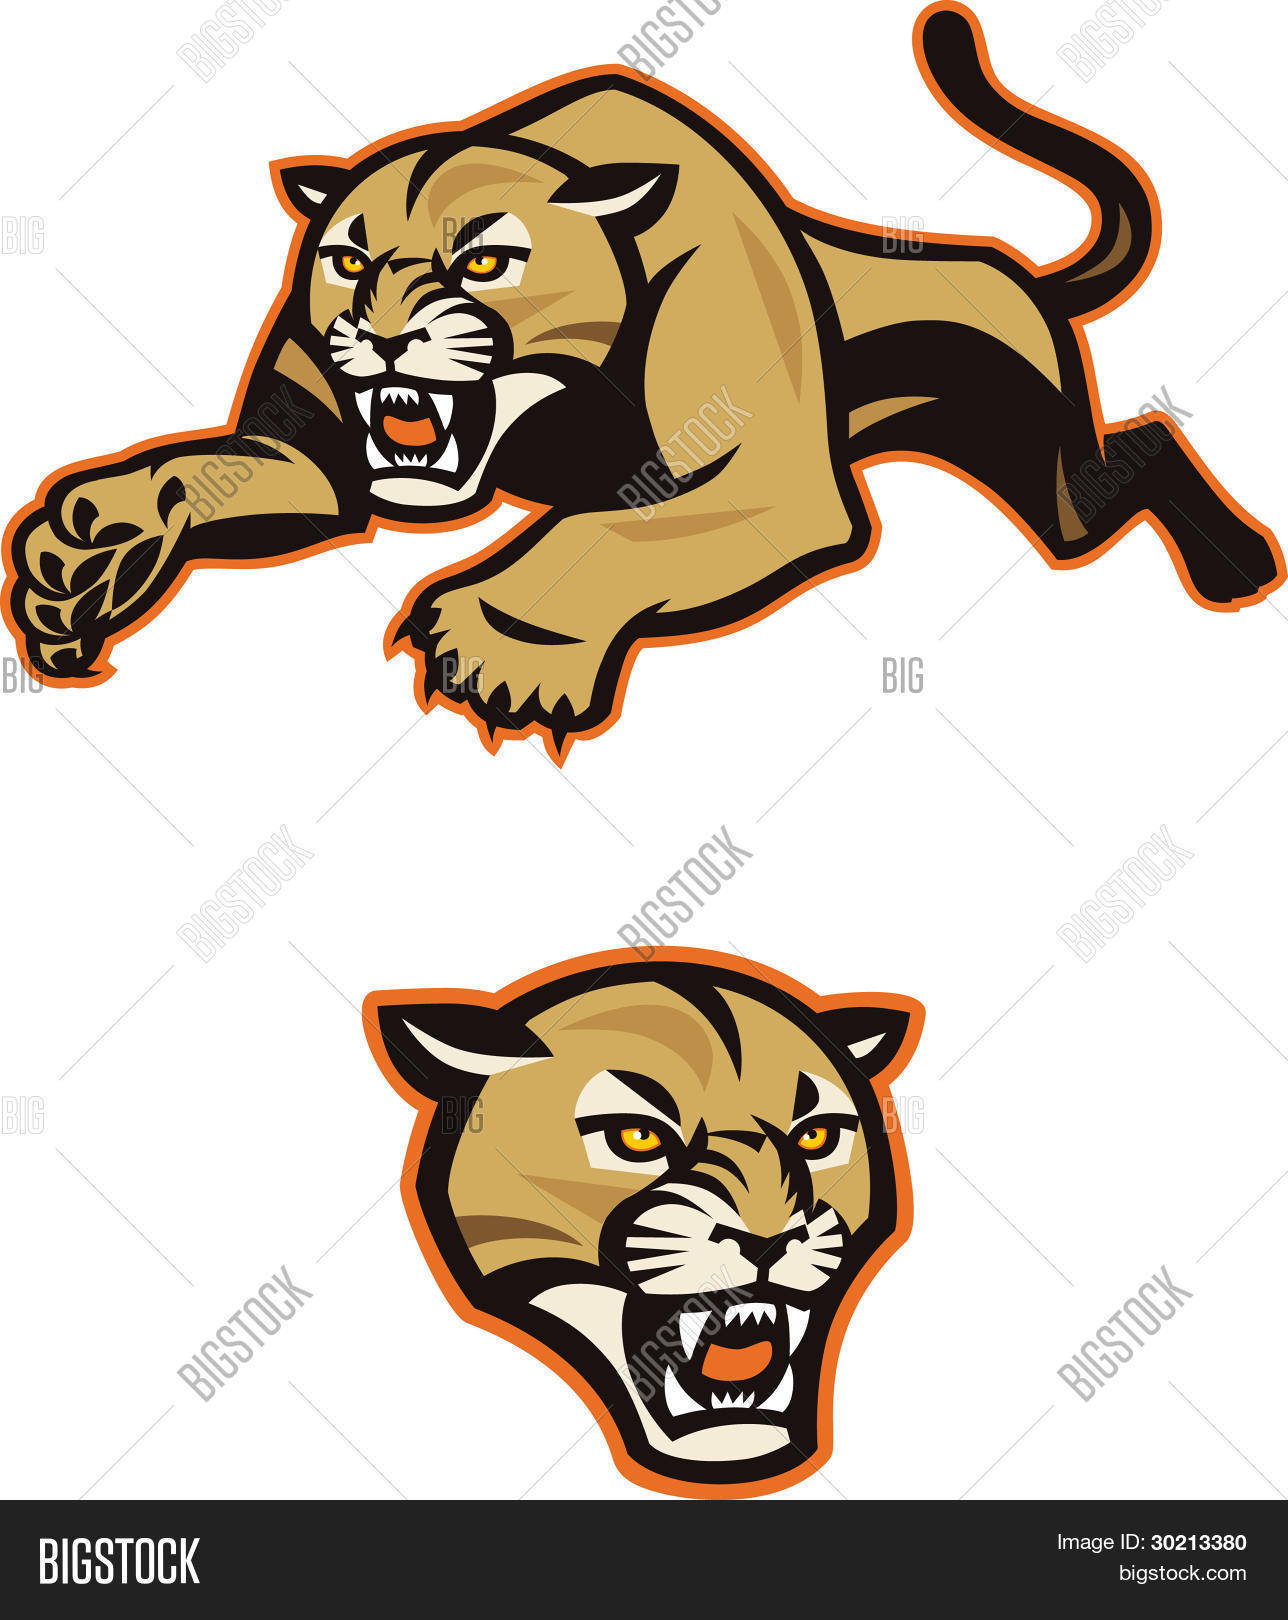 Leaping Cougar Vector & Photo | Bigstock